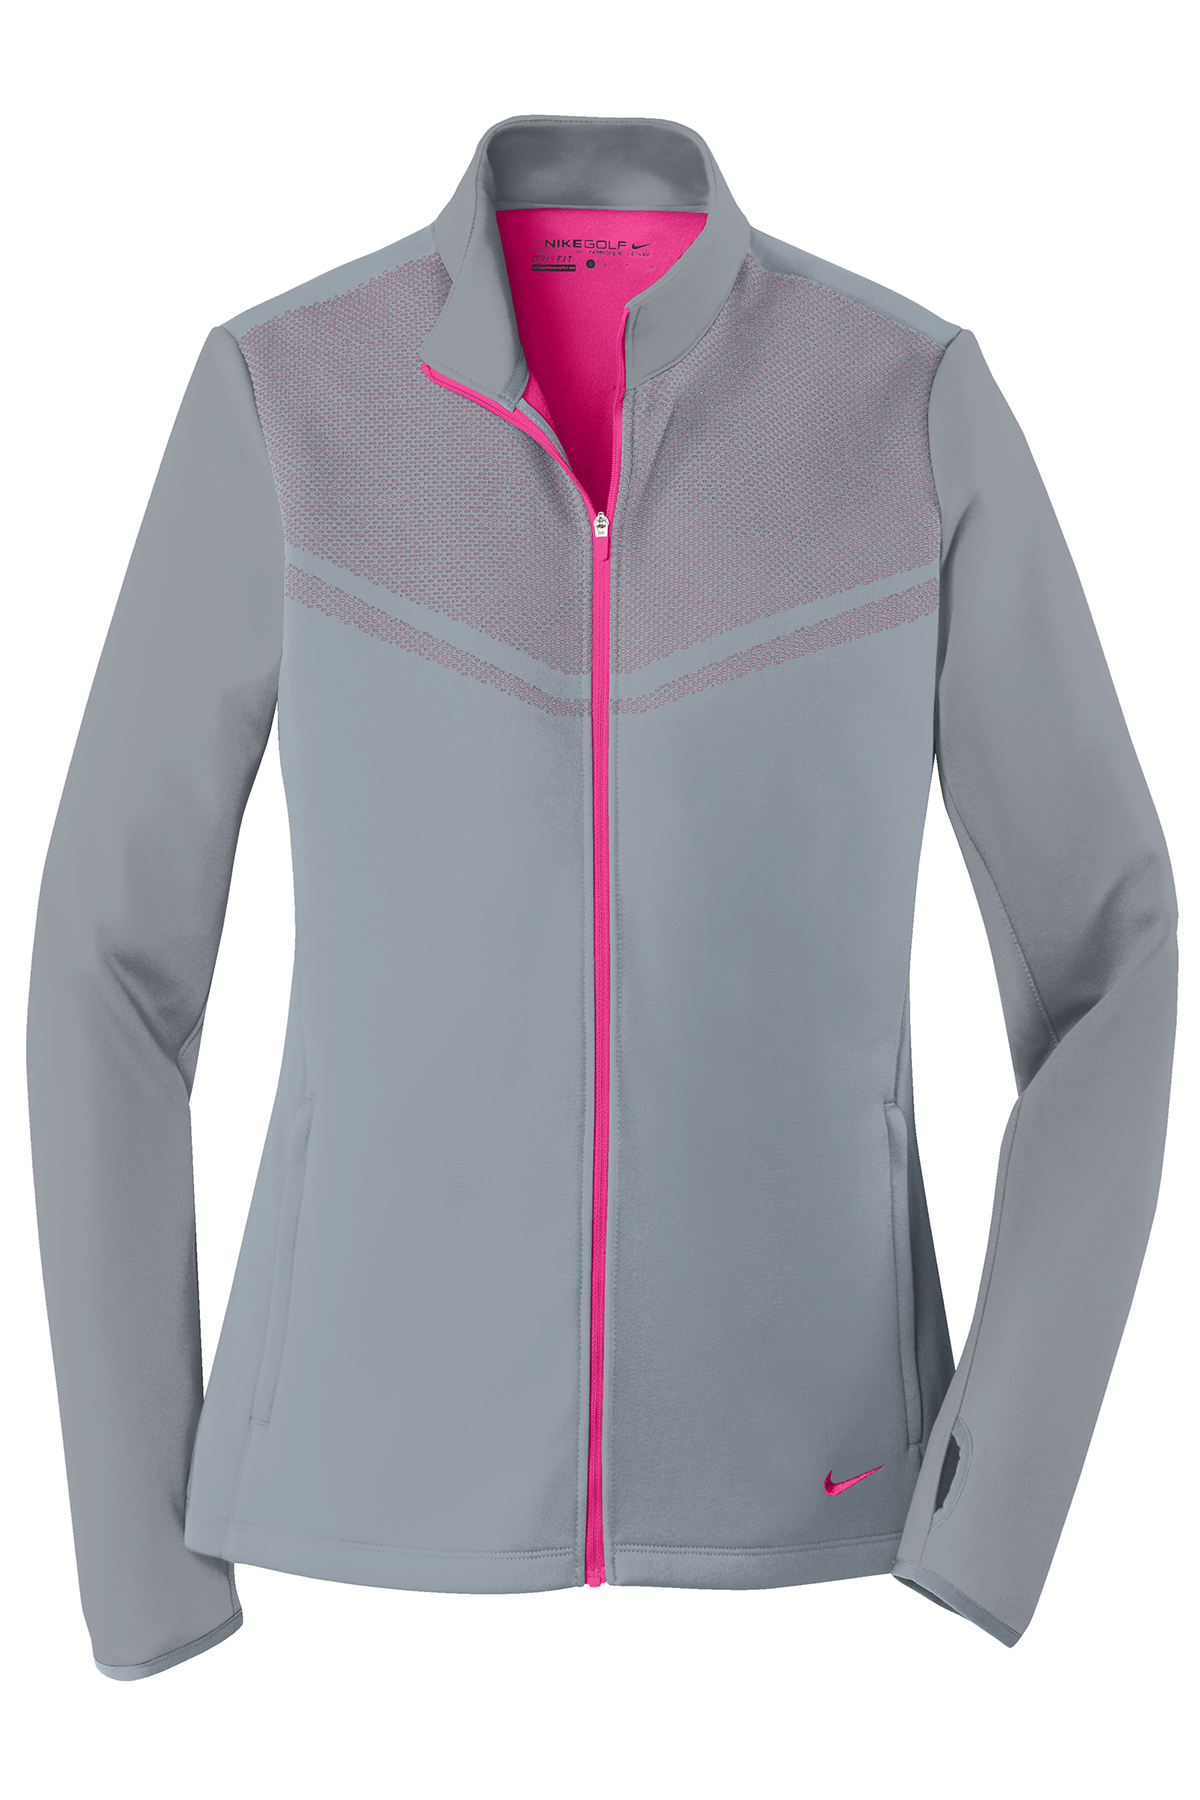 ... Nike Ladies Therma-FIT Hypervis Full-Zip Jacket. A maximum of 8 logos  have been uploaded. Please remove a logo from My Logos to continue b9560aeee